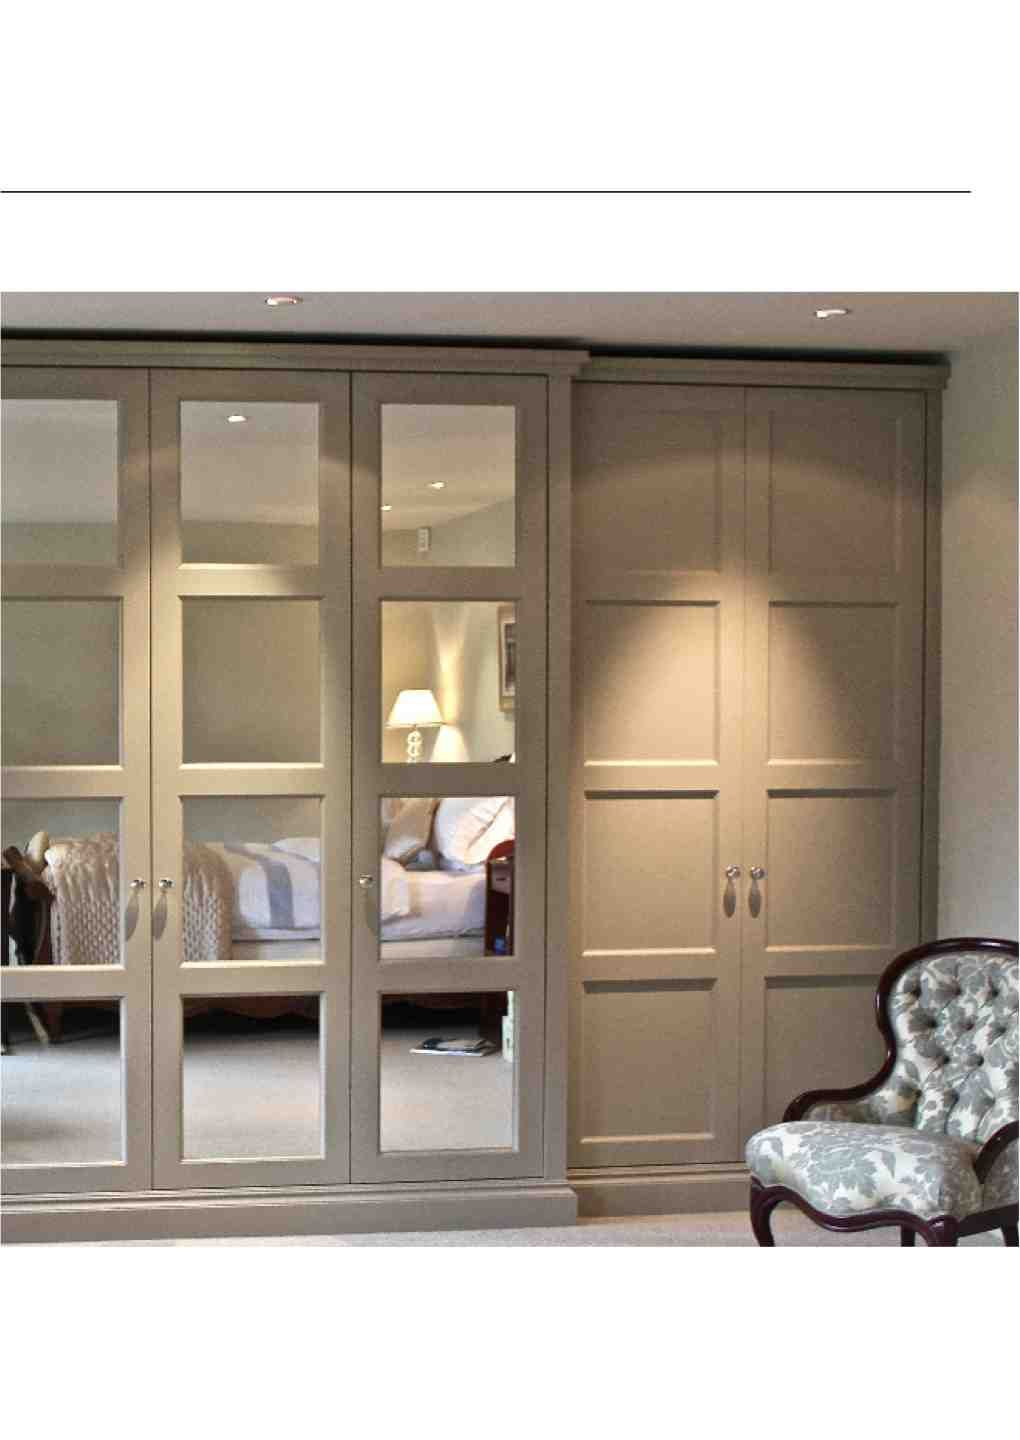 Bedroom Wardrobe Doors Designs Amusing Maybe Put In New Mirrored Bic In Master B'rm With Door On End Decorating Inspiration